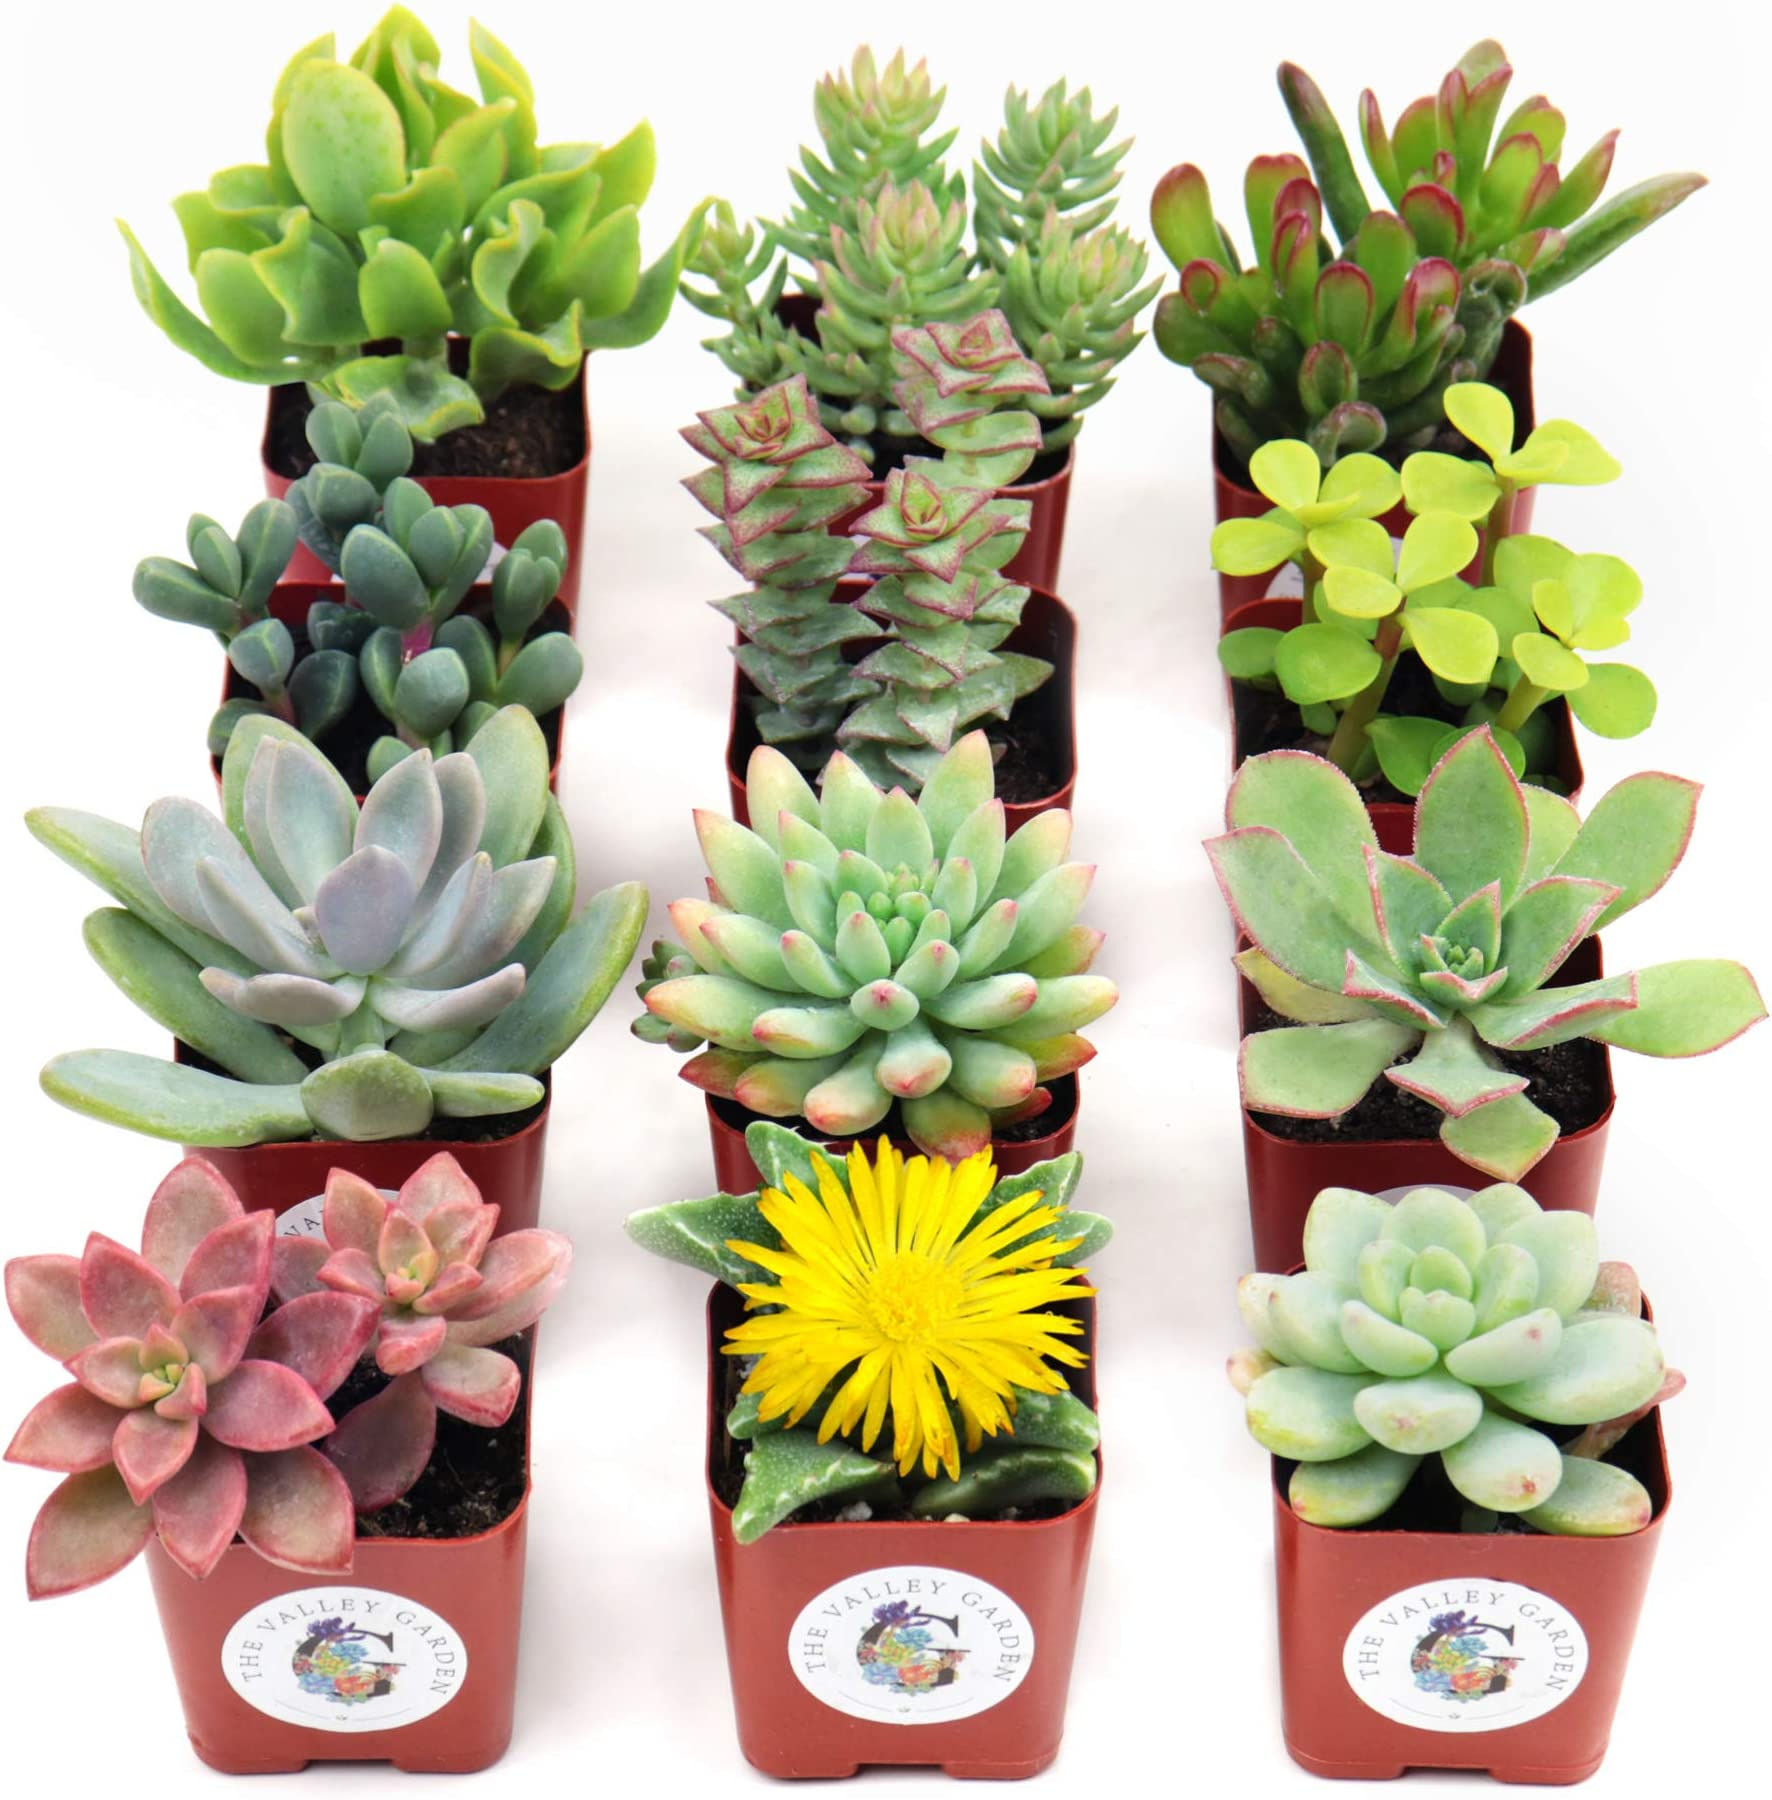 Succulents 12 Assorted potted 2.5 rooted succulents plants Premium Quality